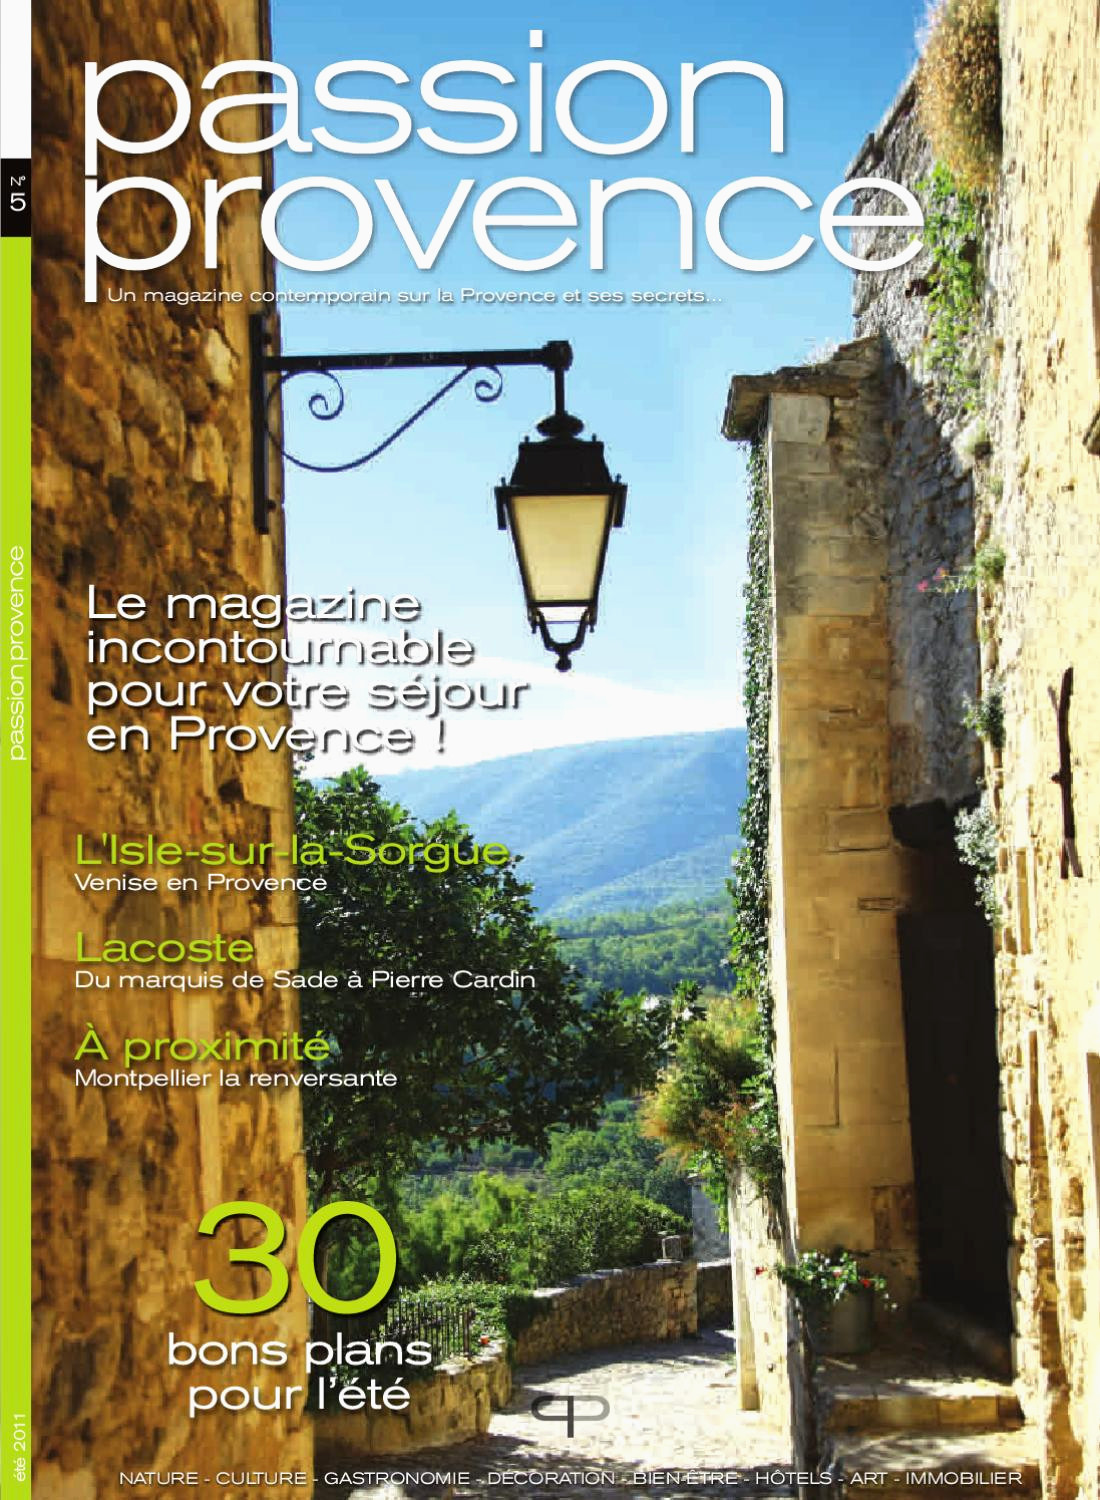 Peinture Facade Ocre Provencal Inspirant Passion Provence 5 by Effective Media issuu Collection